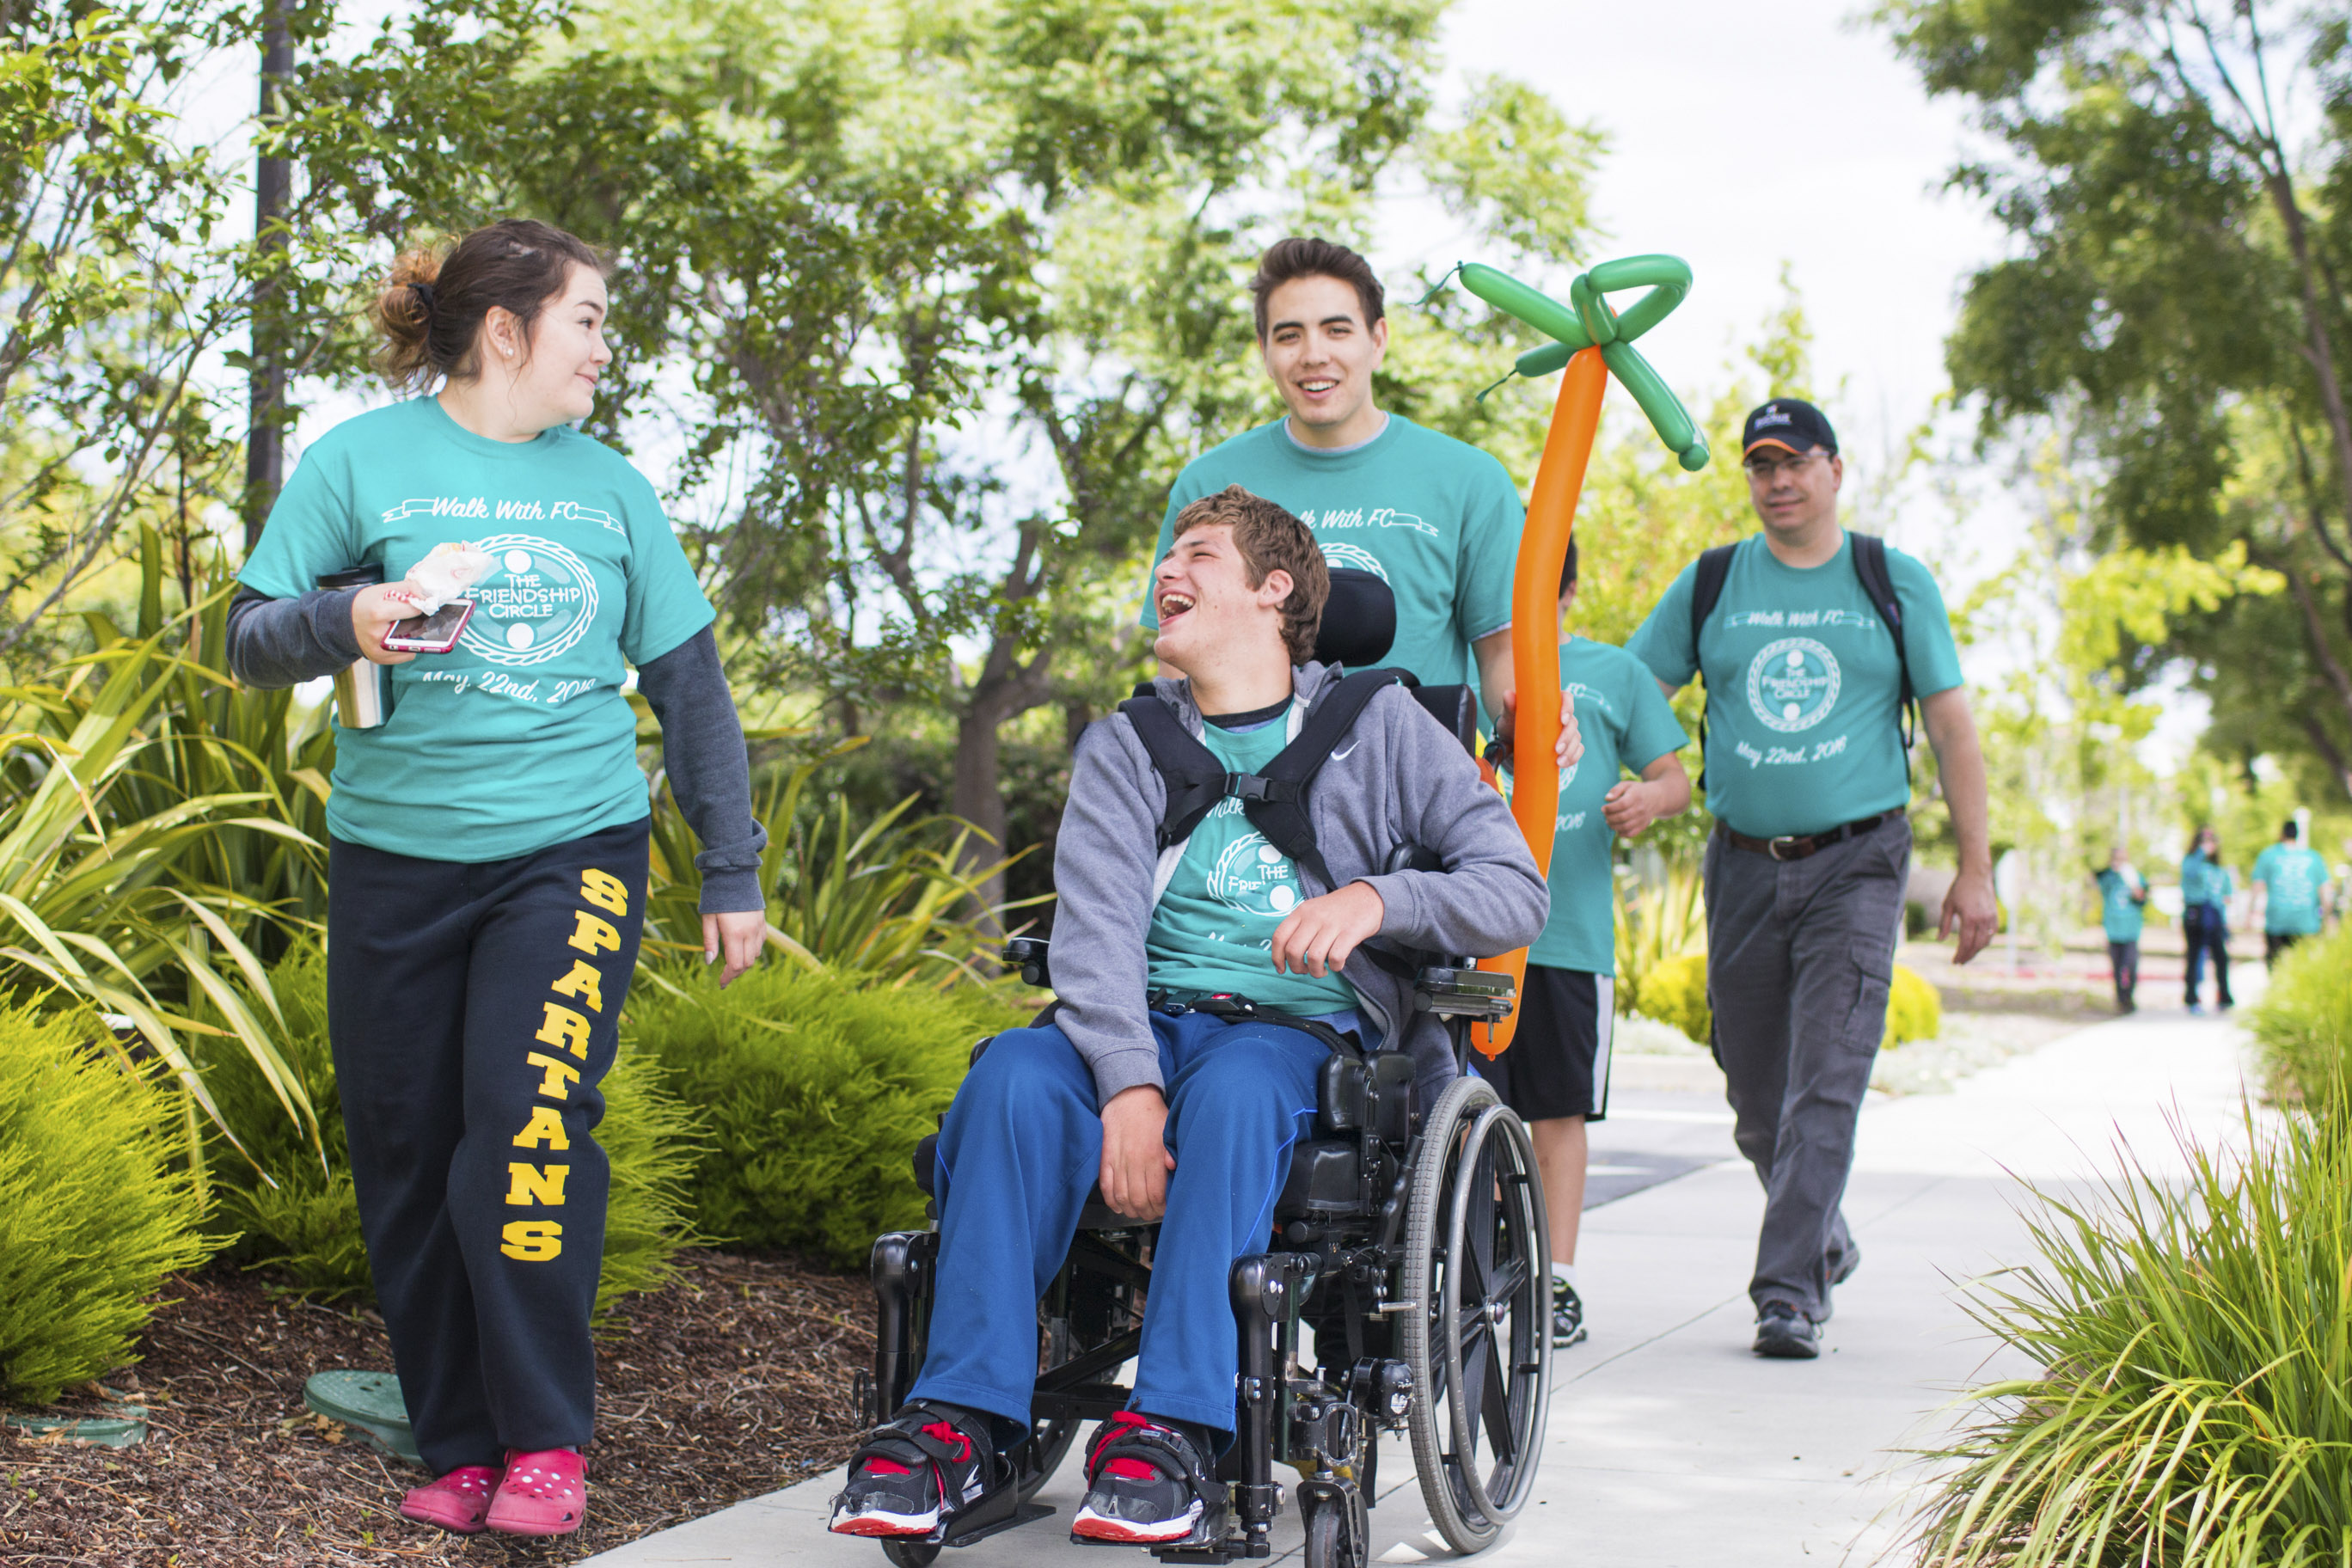 Walk-a-Thon marchers with disabled teen in a wheelchair.